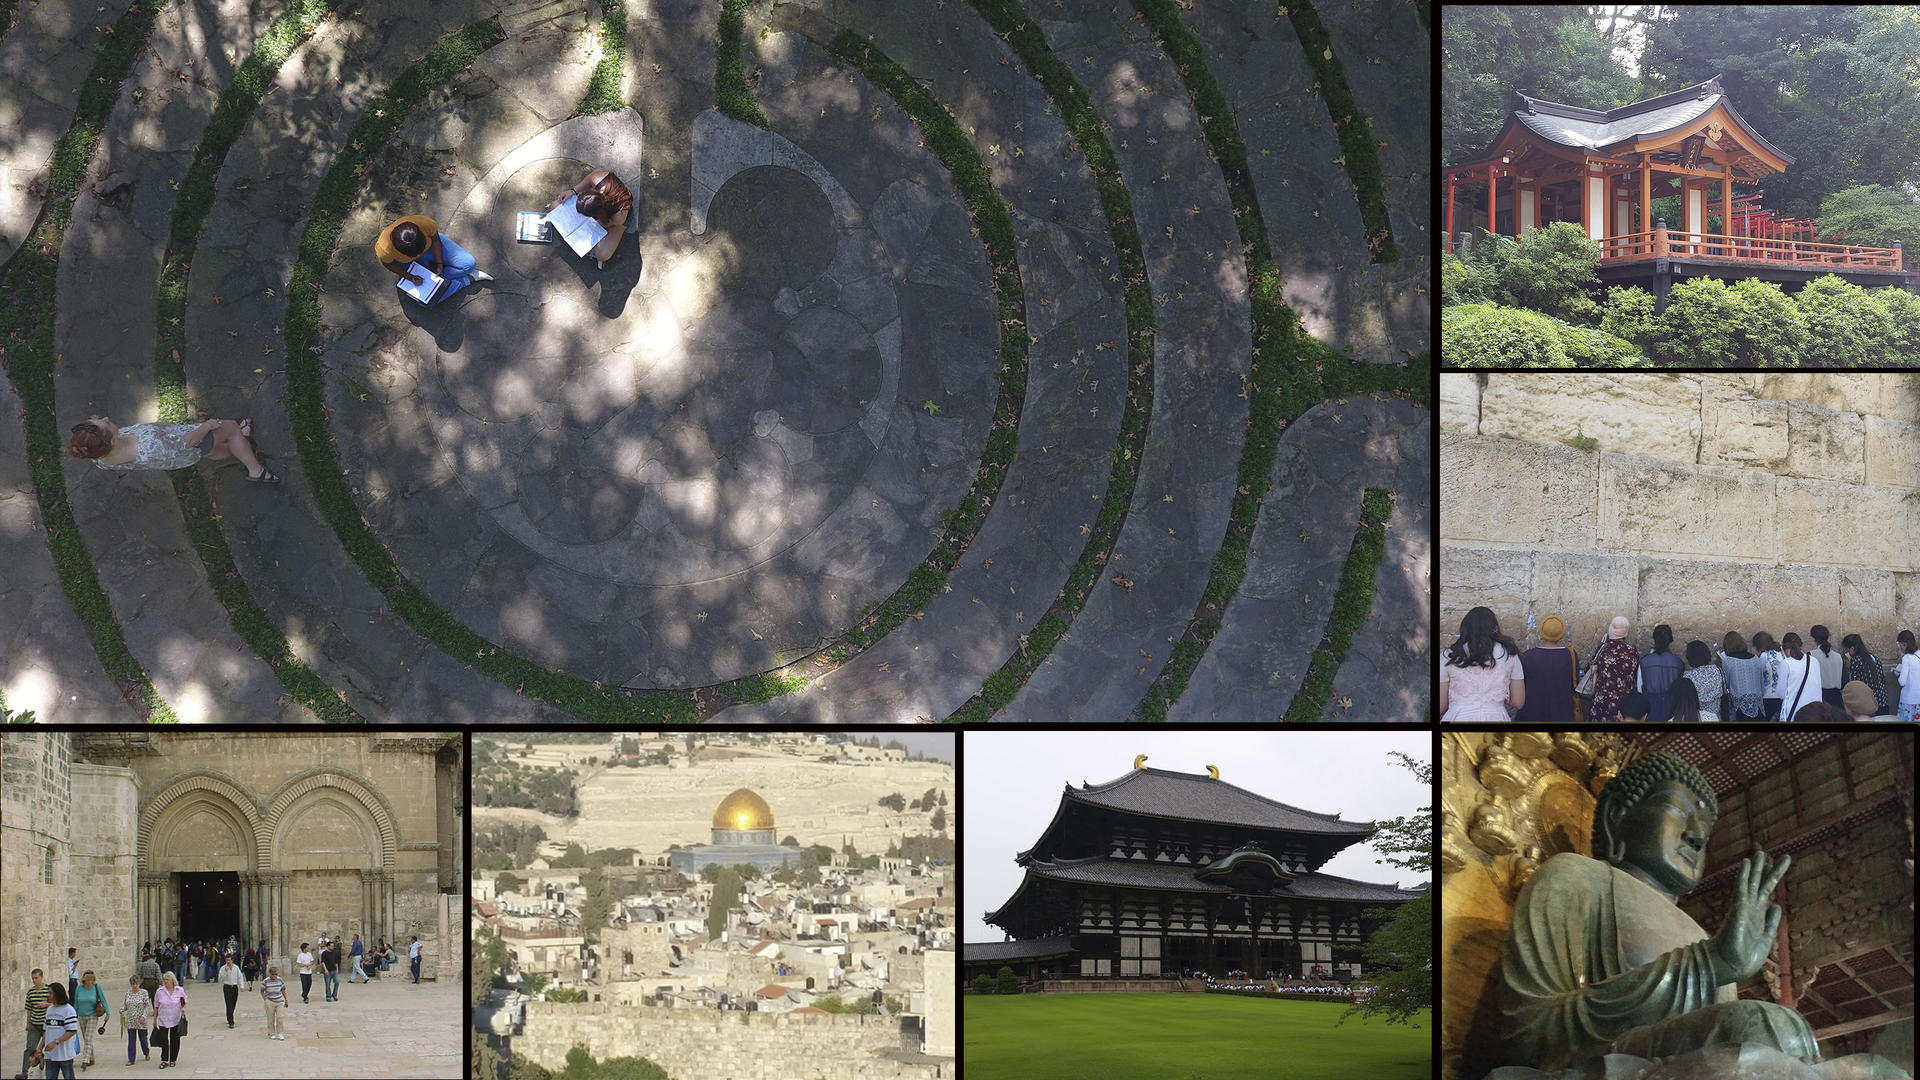 A collage of religious monuments around the world